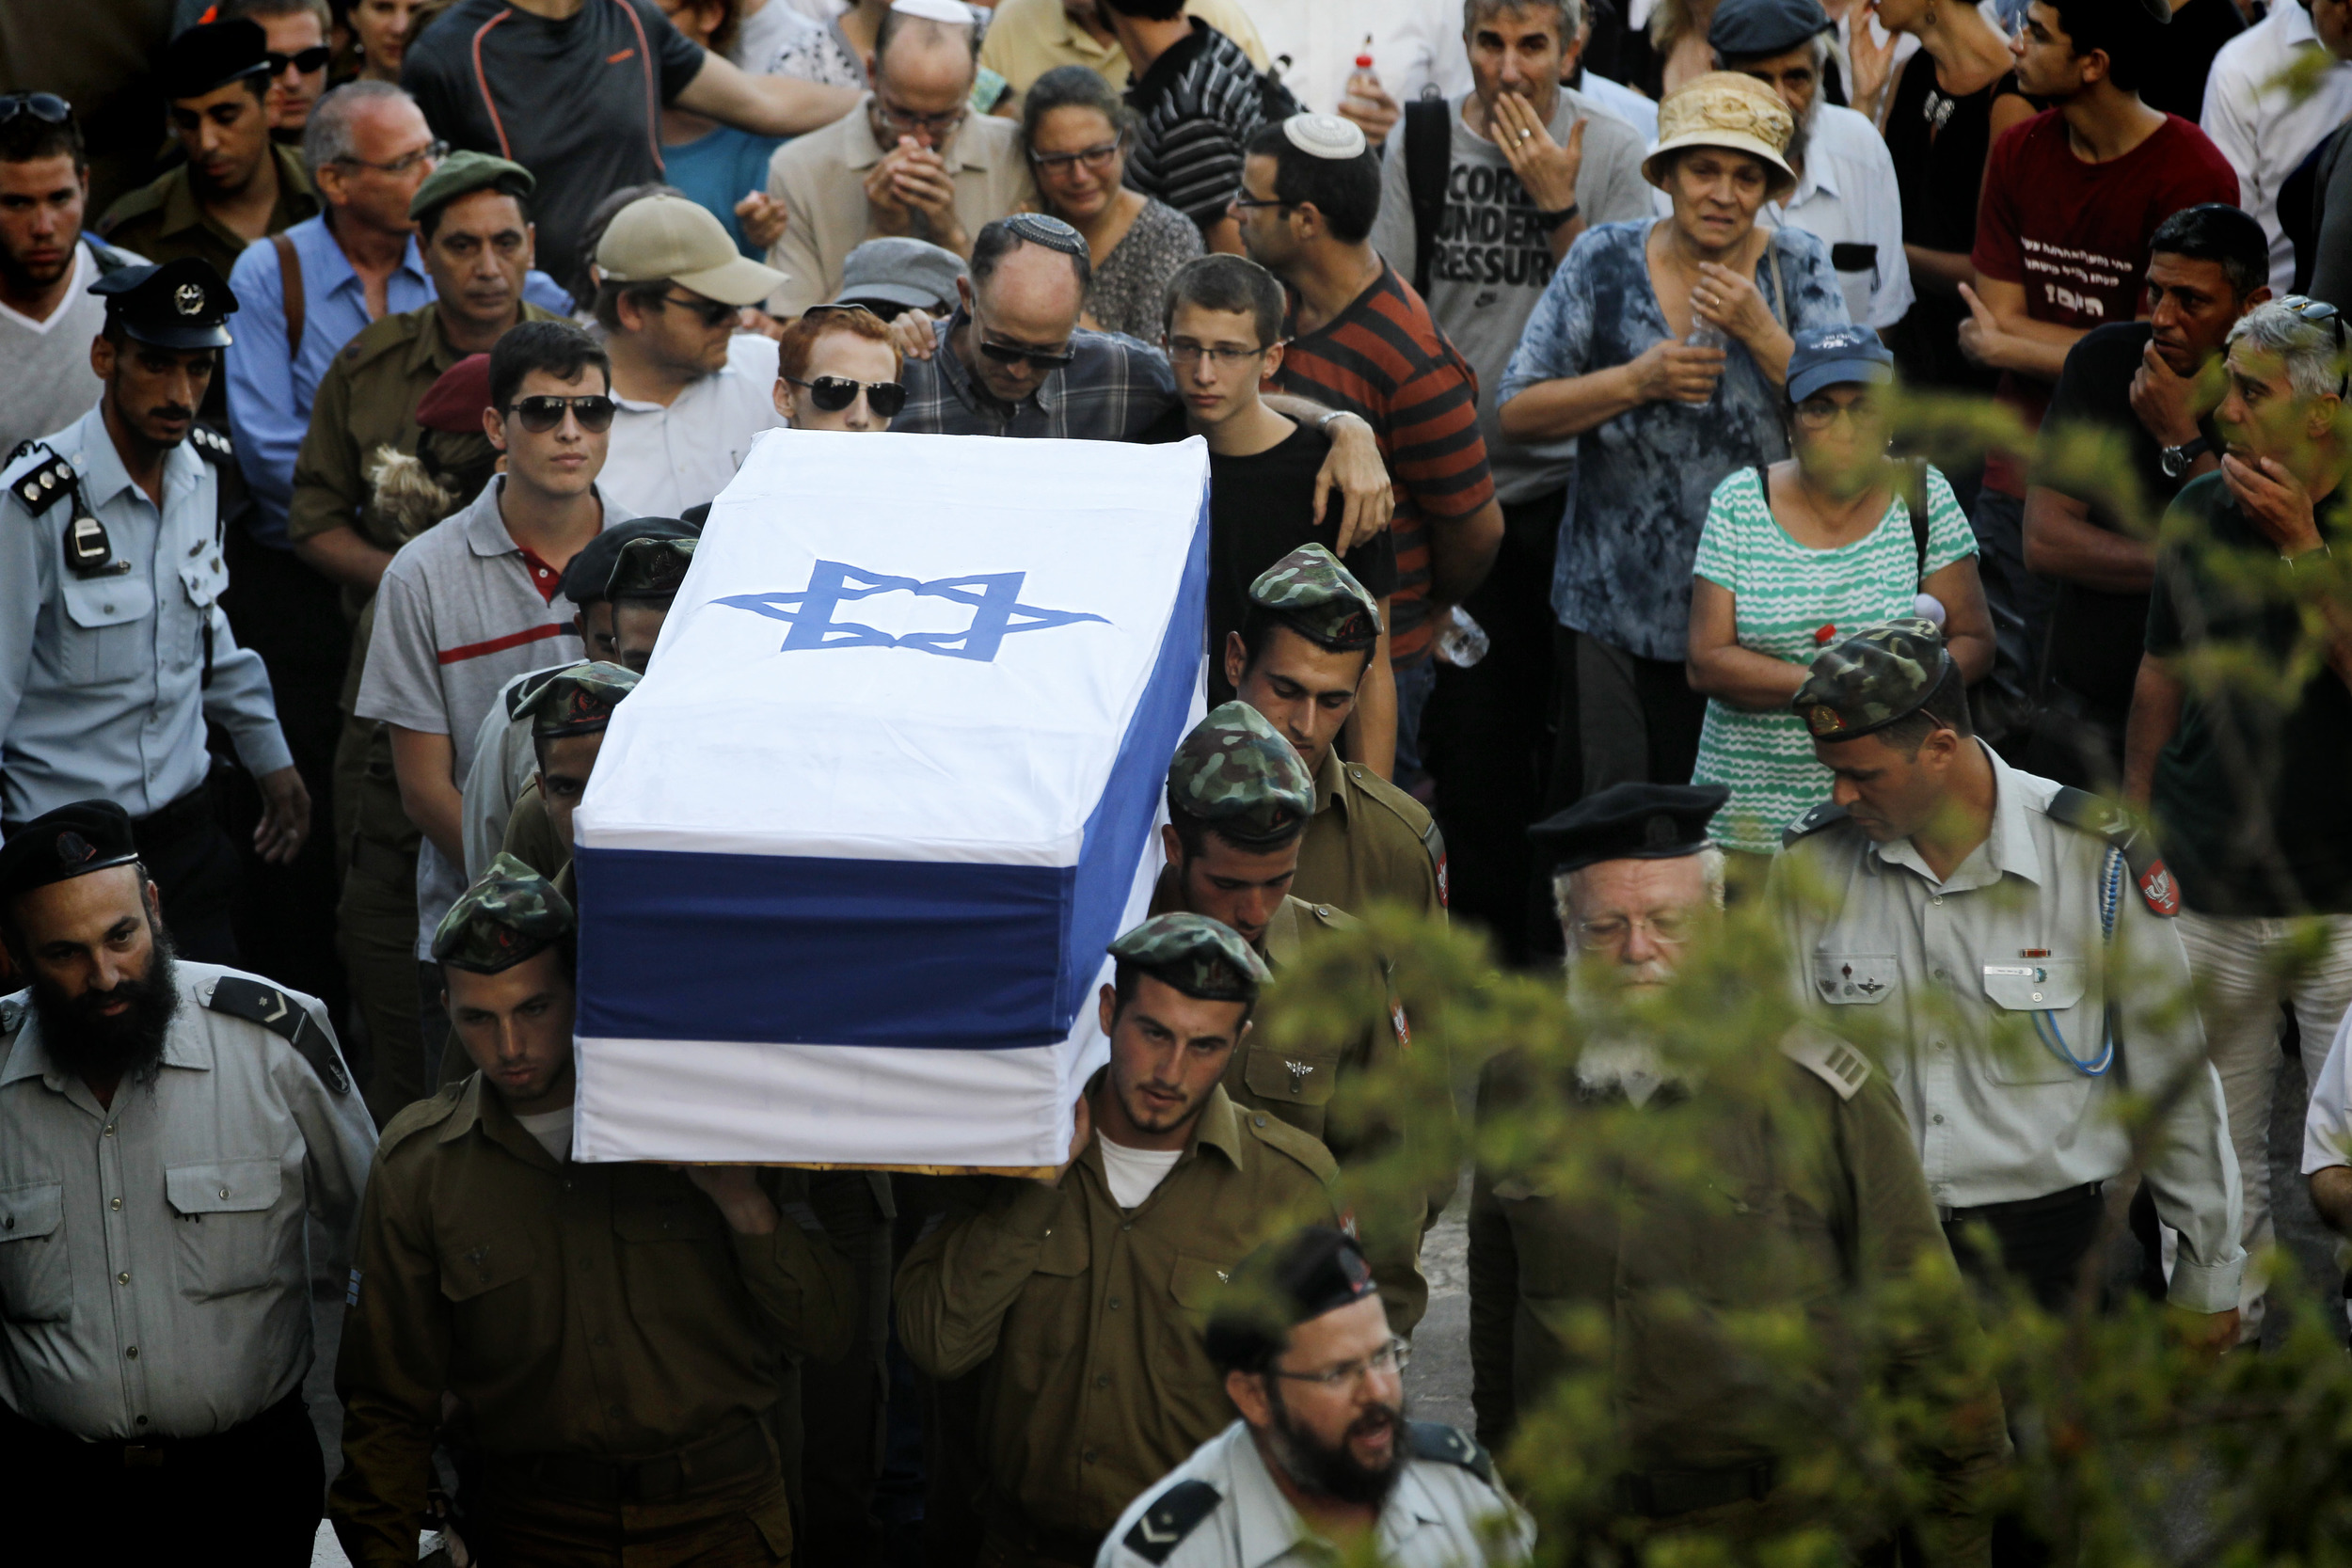 Click photo to download. Caption: Friends and relatives mourn at the funeral of IDF Sgt. Barkey Ishai Shor on Mount Herzl in Jerusalem on July 29, 2014. Shor was one of 66 Israeli soldiers killed during last summer's war with Hamas. Credit: Miriam Alster/Flash90.